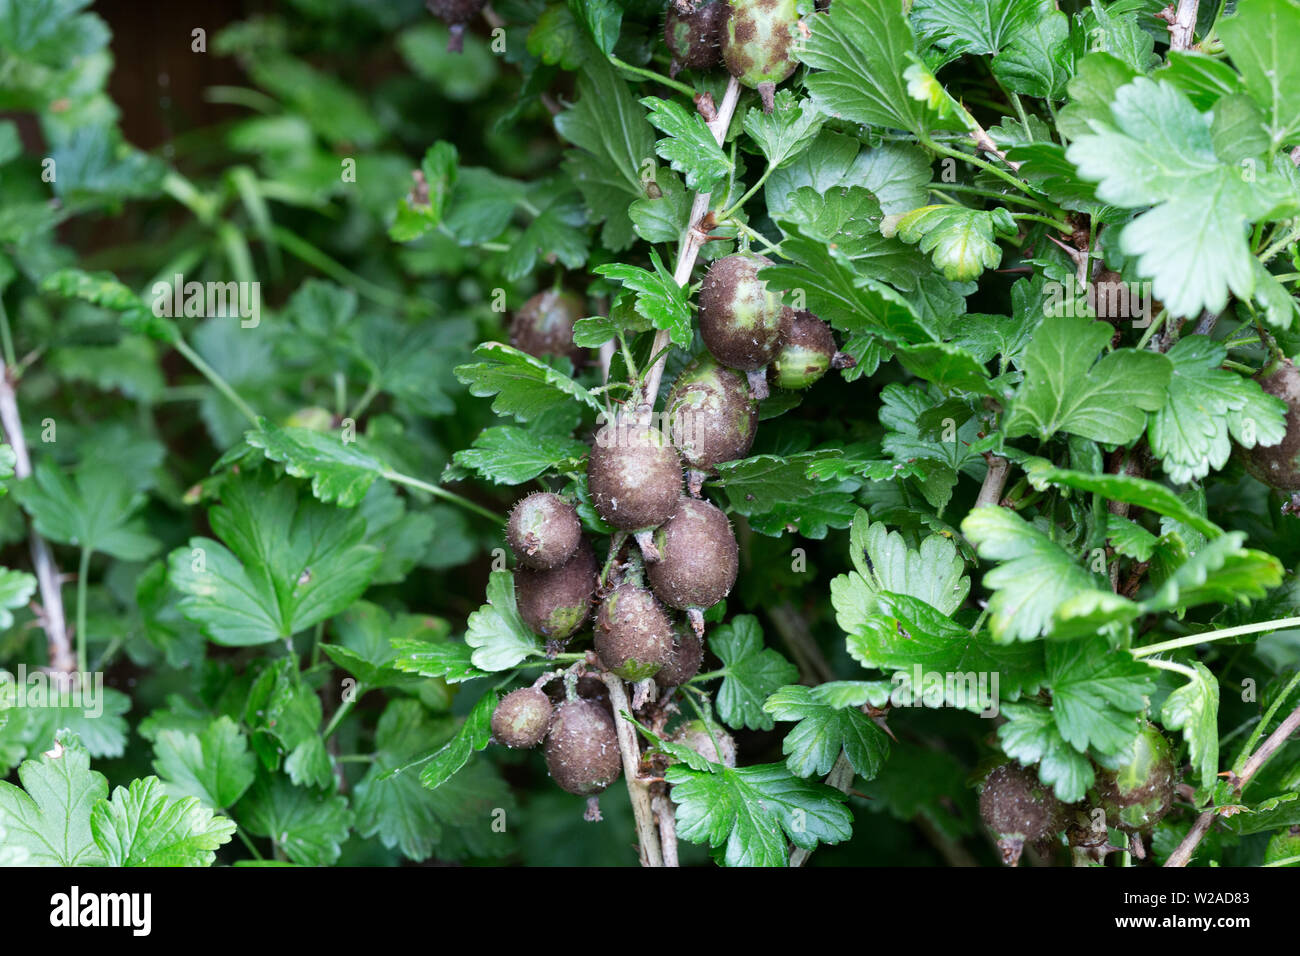 American gooseberry mildew, by the fungus Sphaerotheca mors-uvae, causes brown patches on gooseberries due to the fungal infection of the fruit; UK - Stock Image